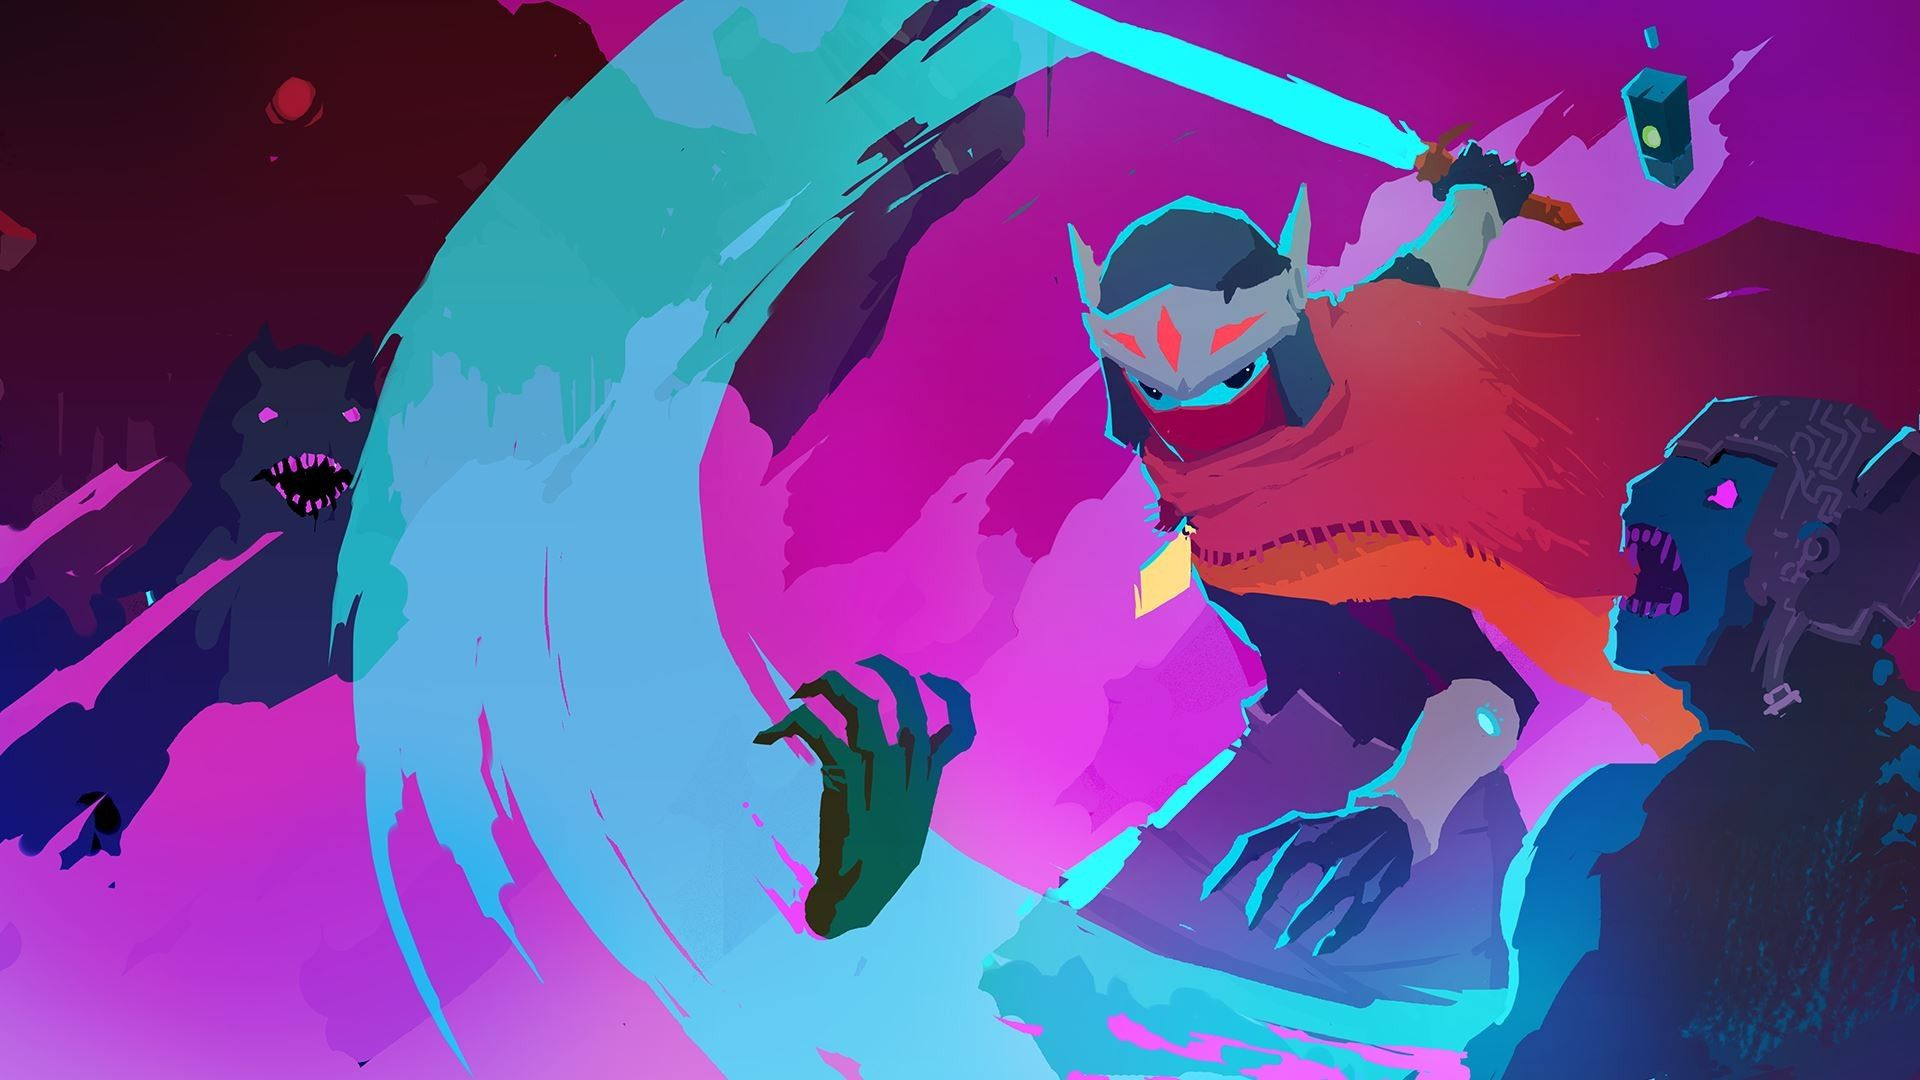 1920x1080 Hyper Light Drifter wallpaper ·① Download free beautiful High ...